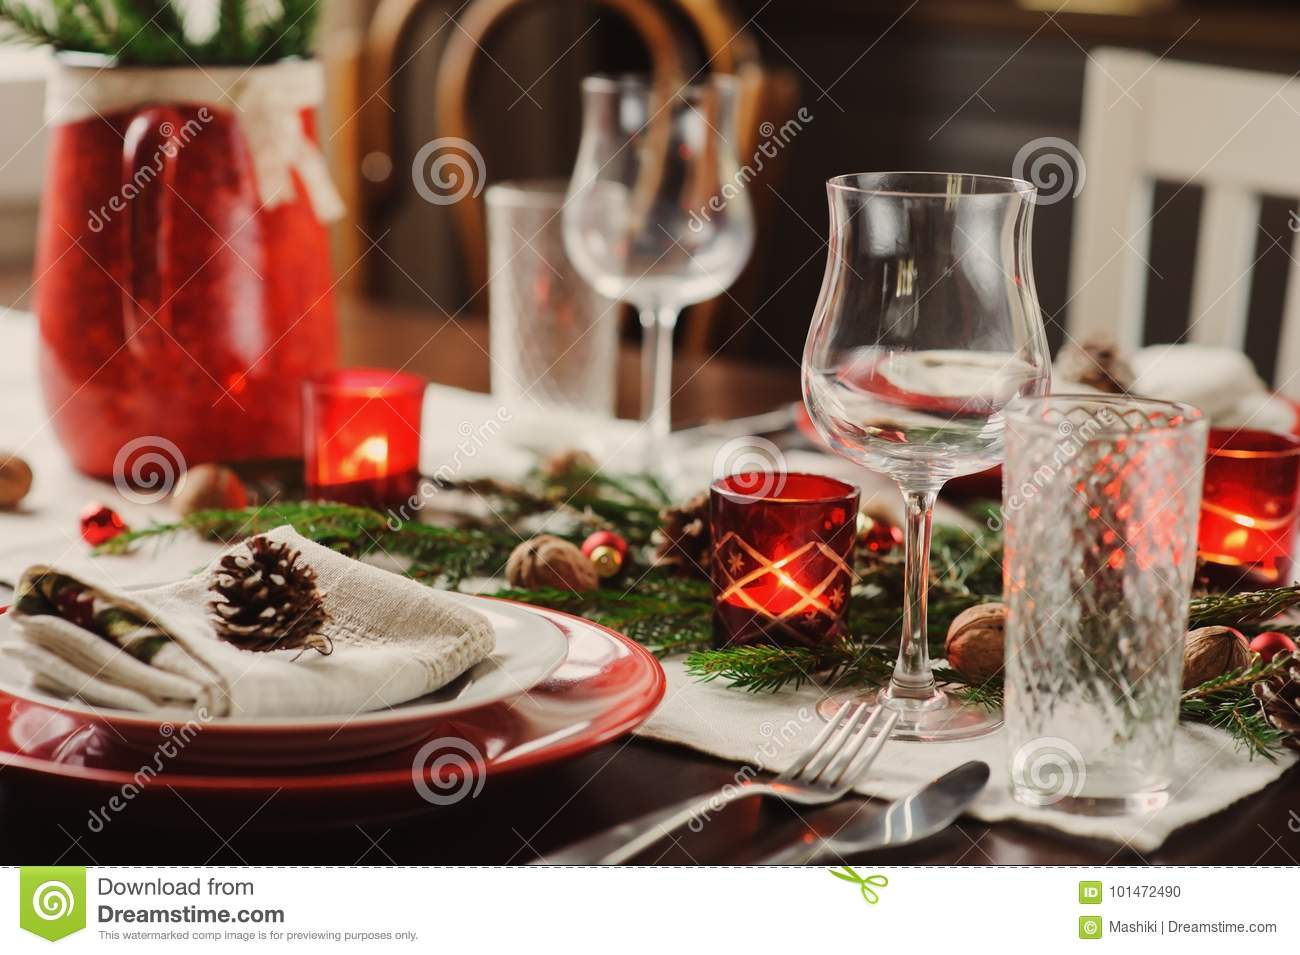 Festive table for the New Year of 2019 Pigs 57